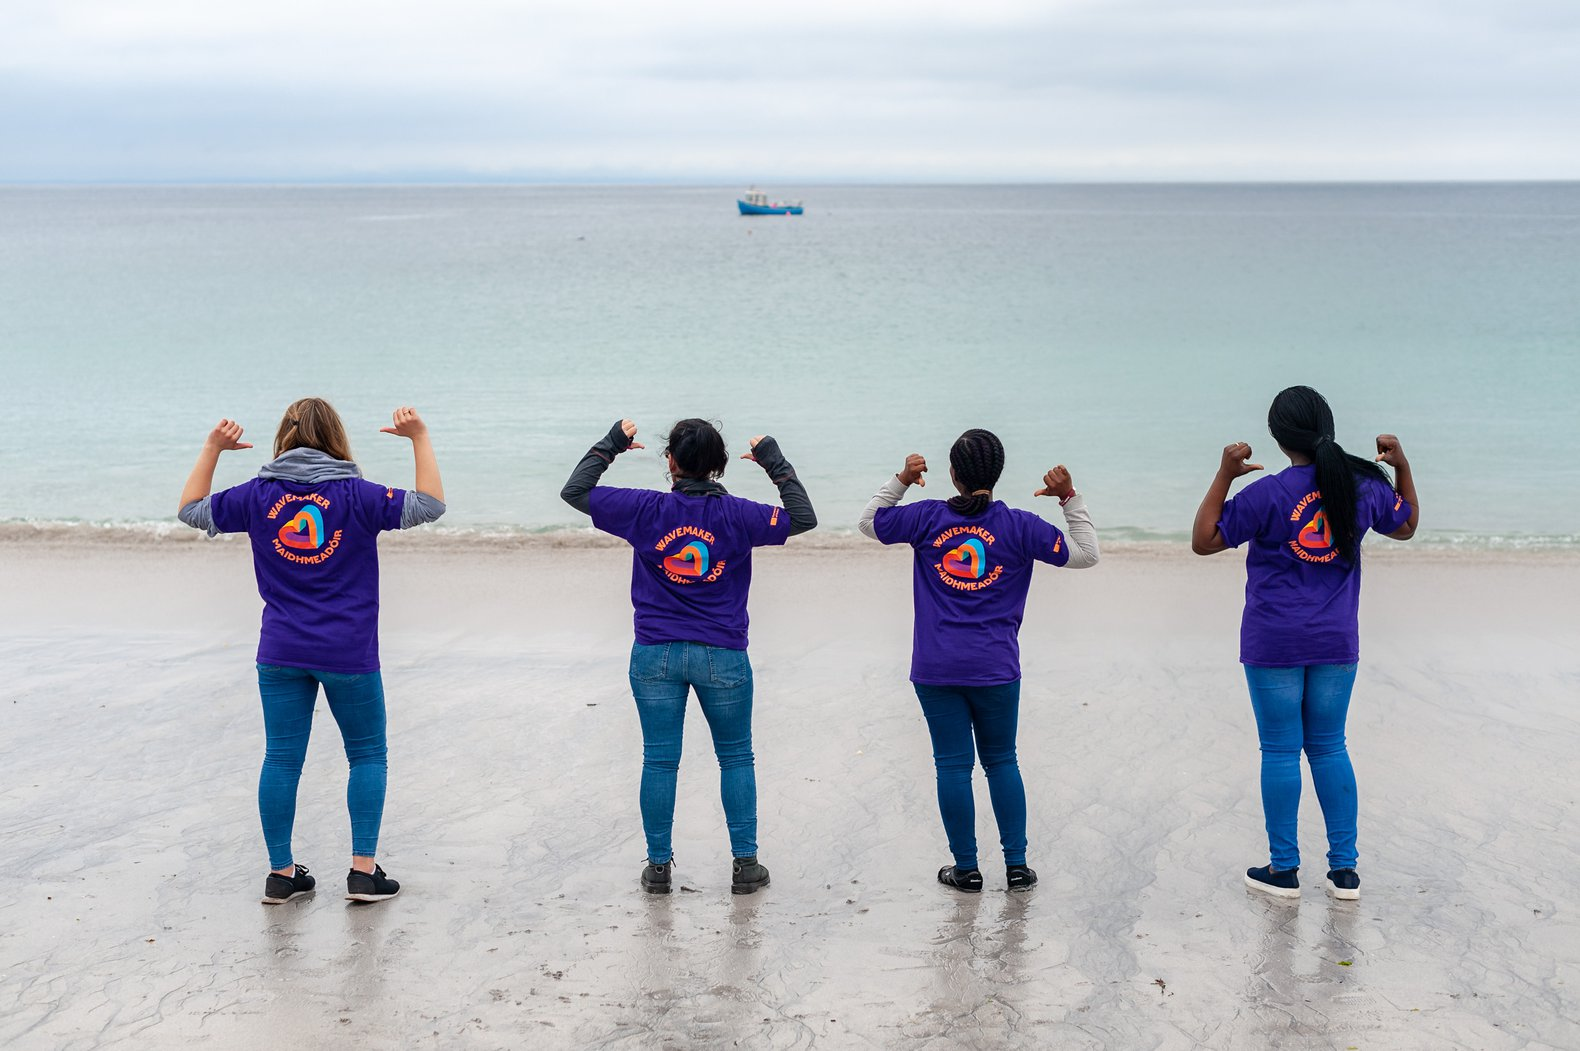 Volunteers with Galway 2020 on the Aran Islands